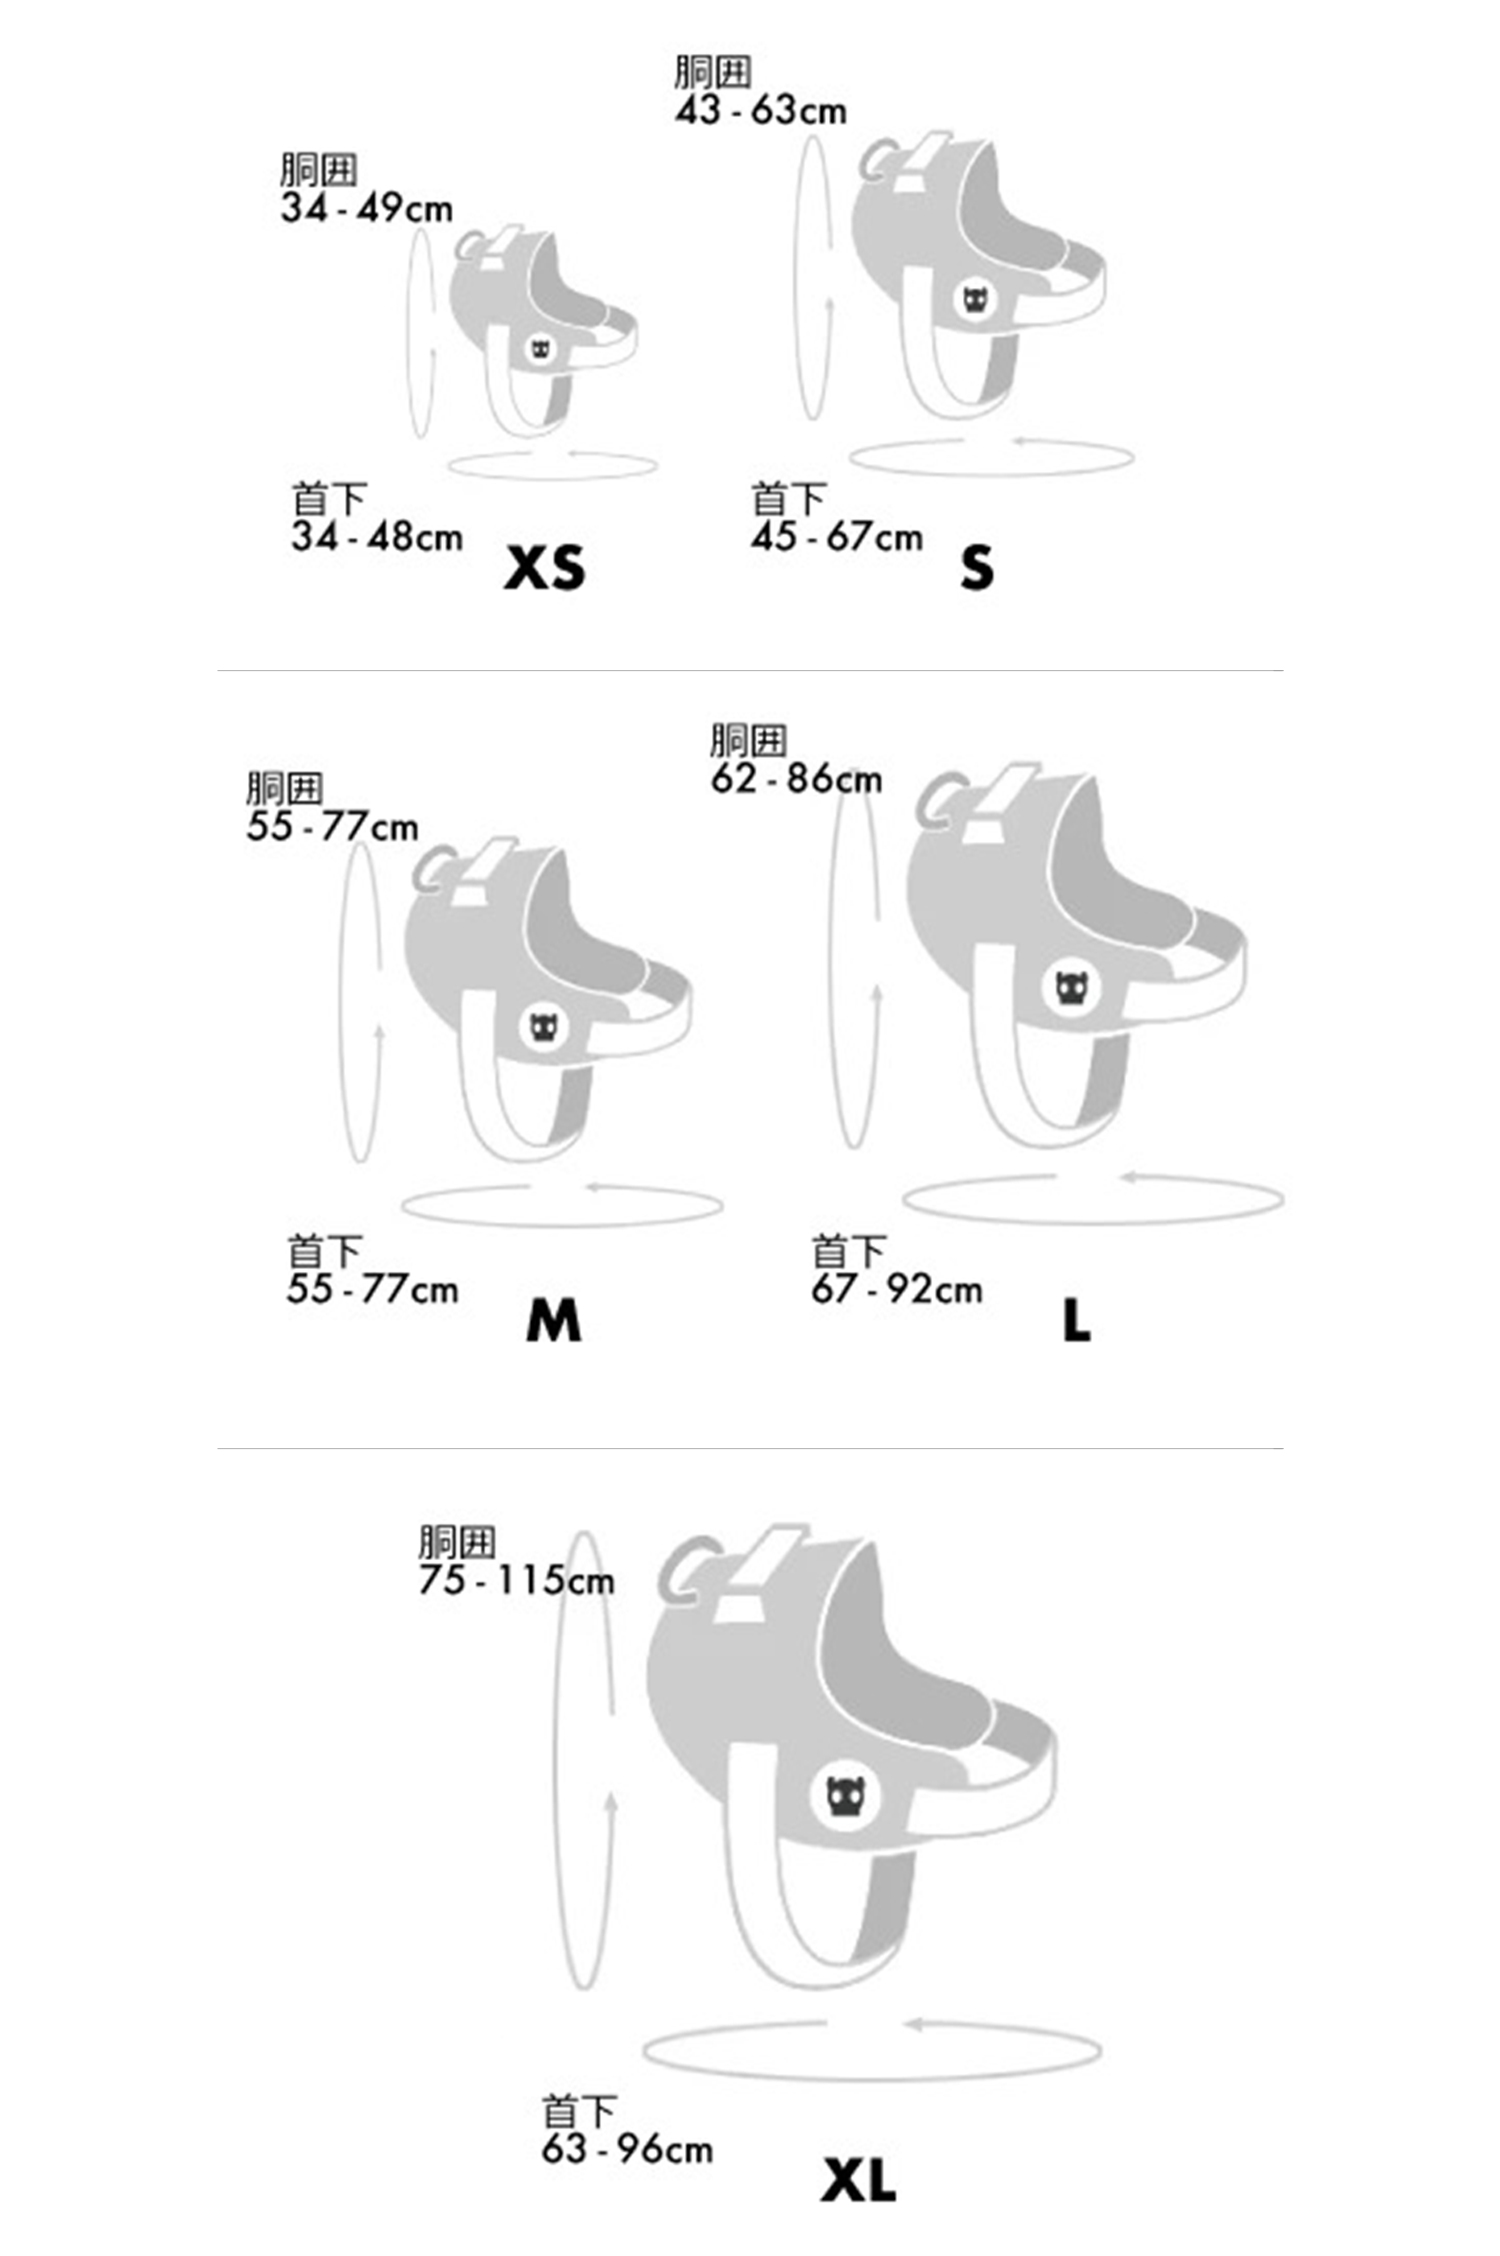 Zee.dog   Fly harness   Size guide